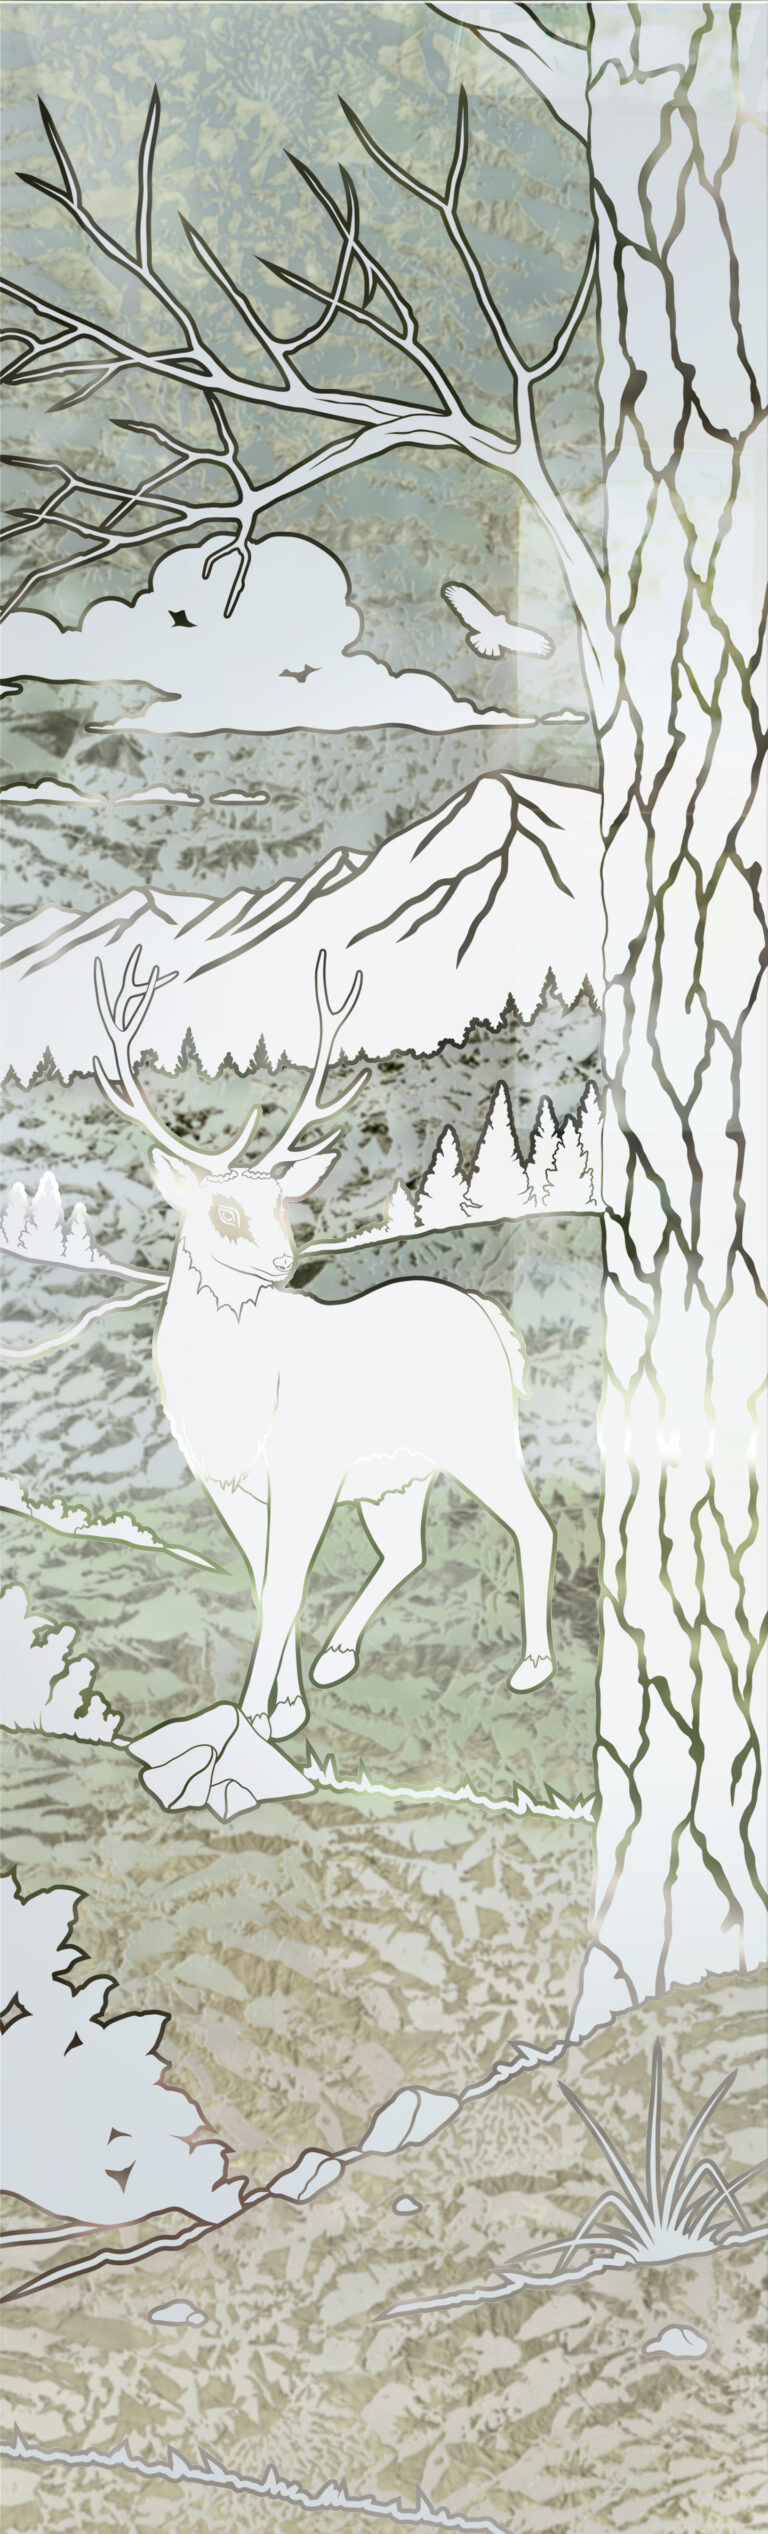 Wandering White Tail